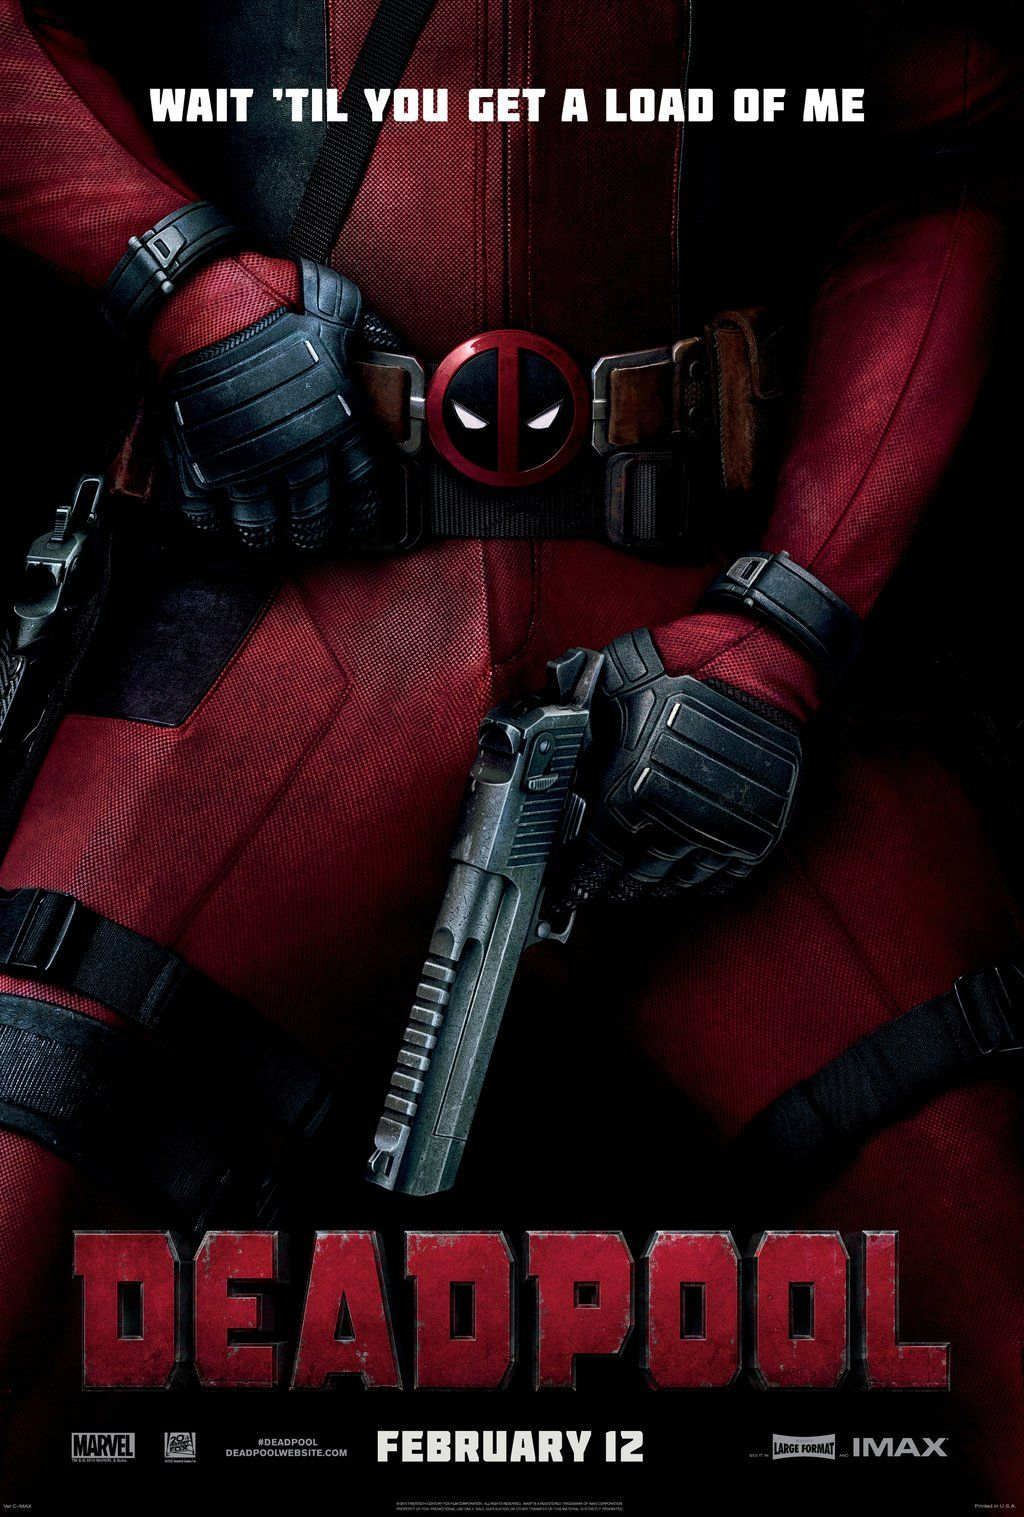 Imax Poster And Promo For Deadpool Released